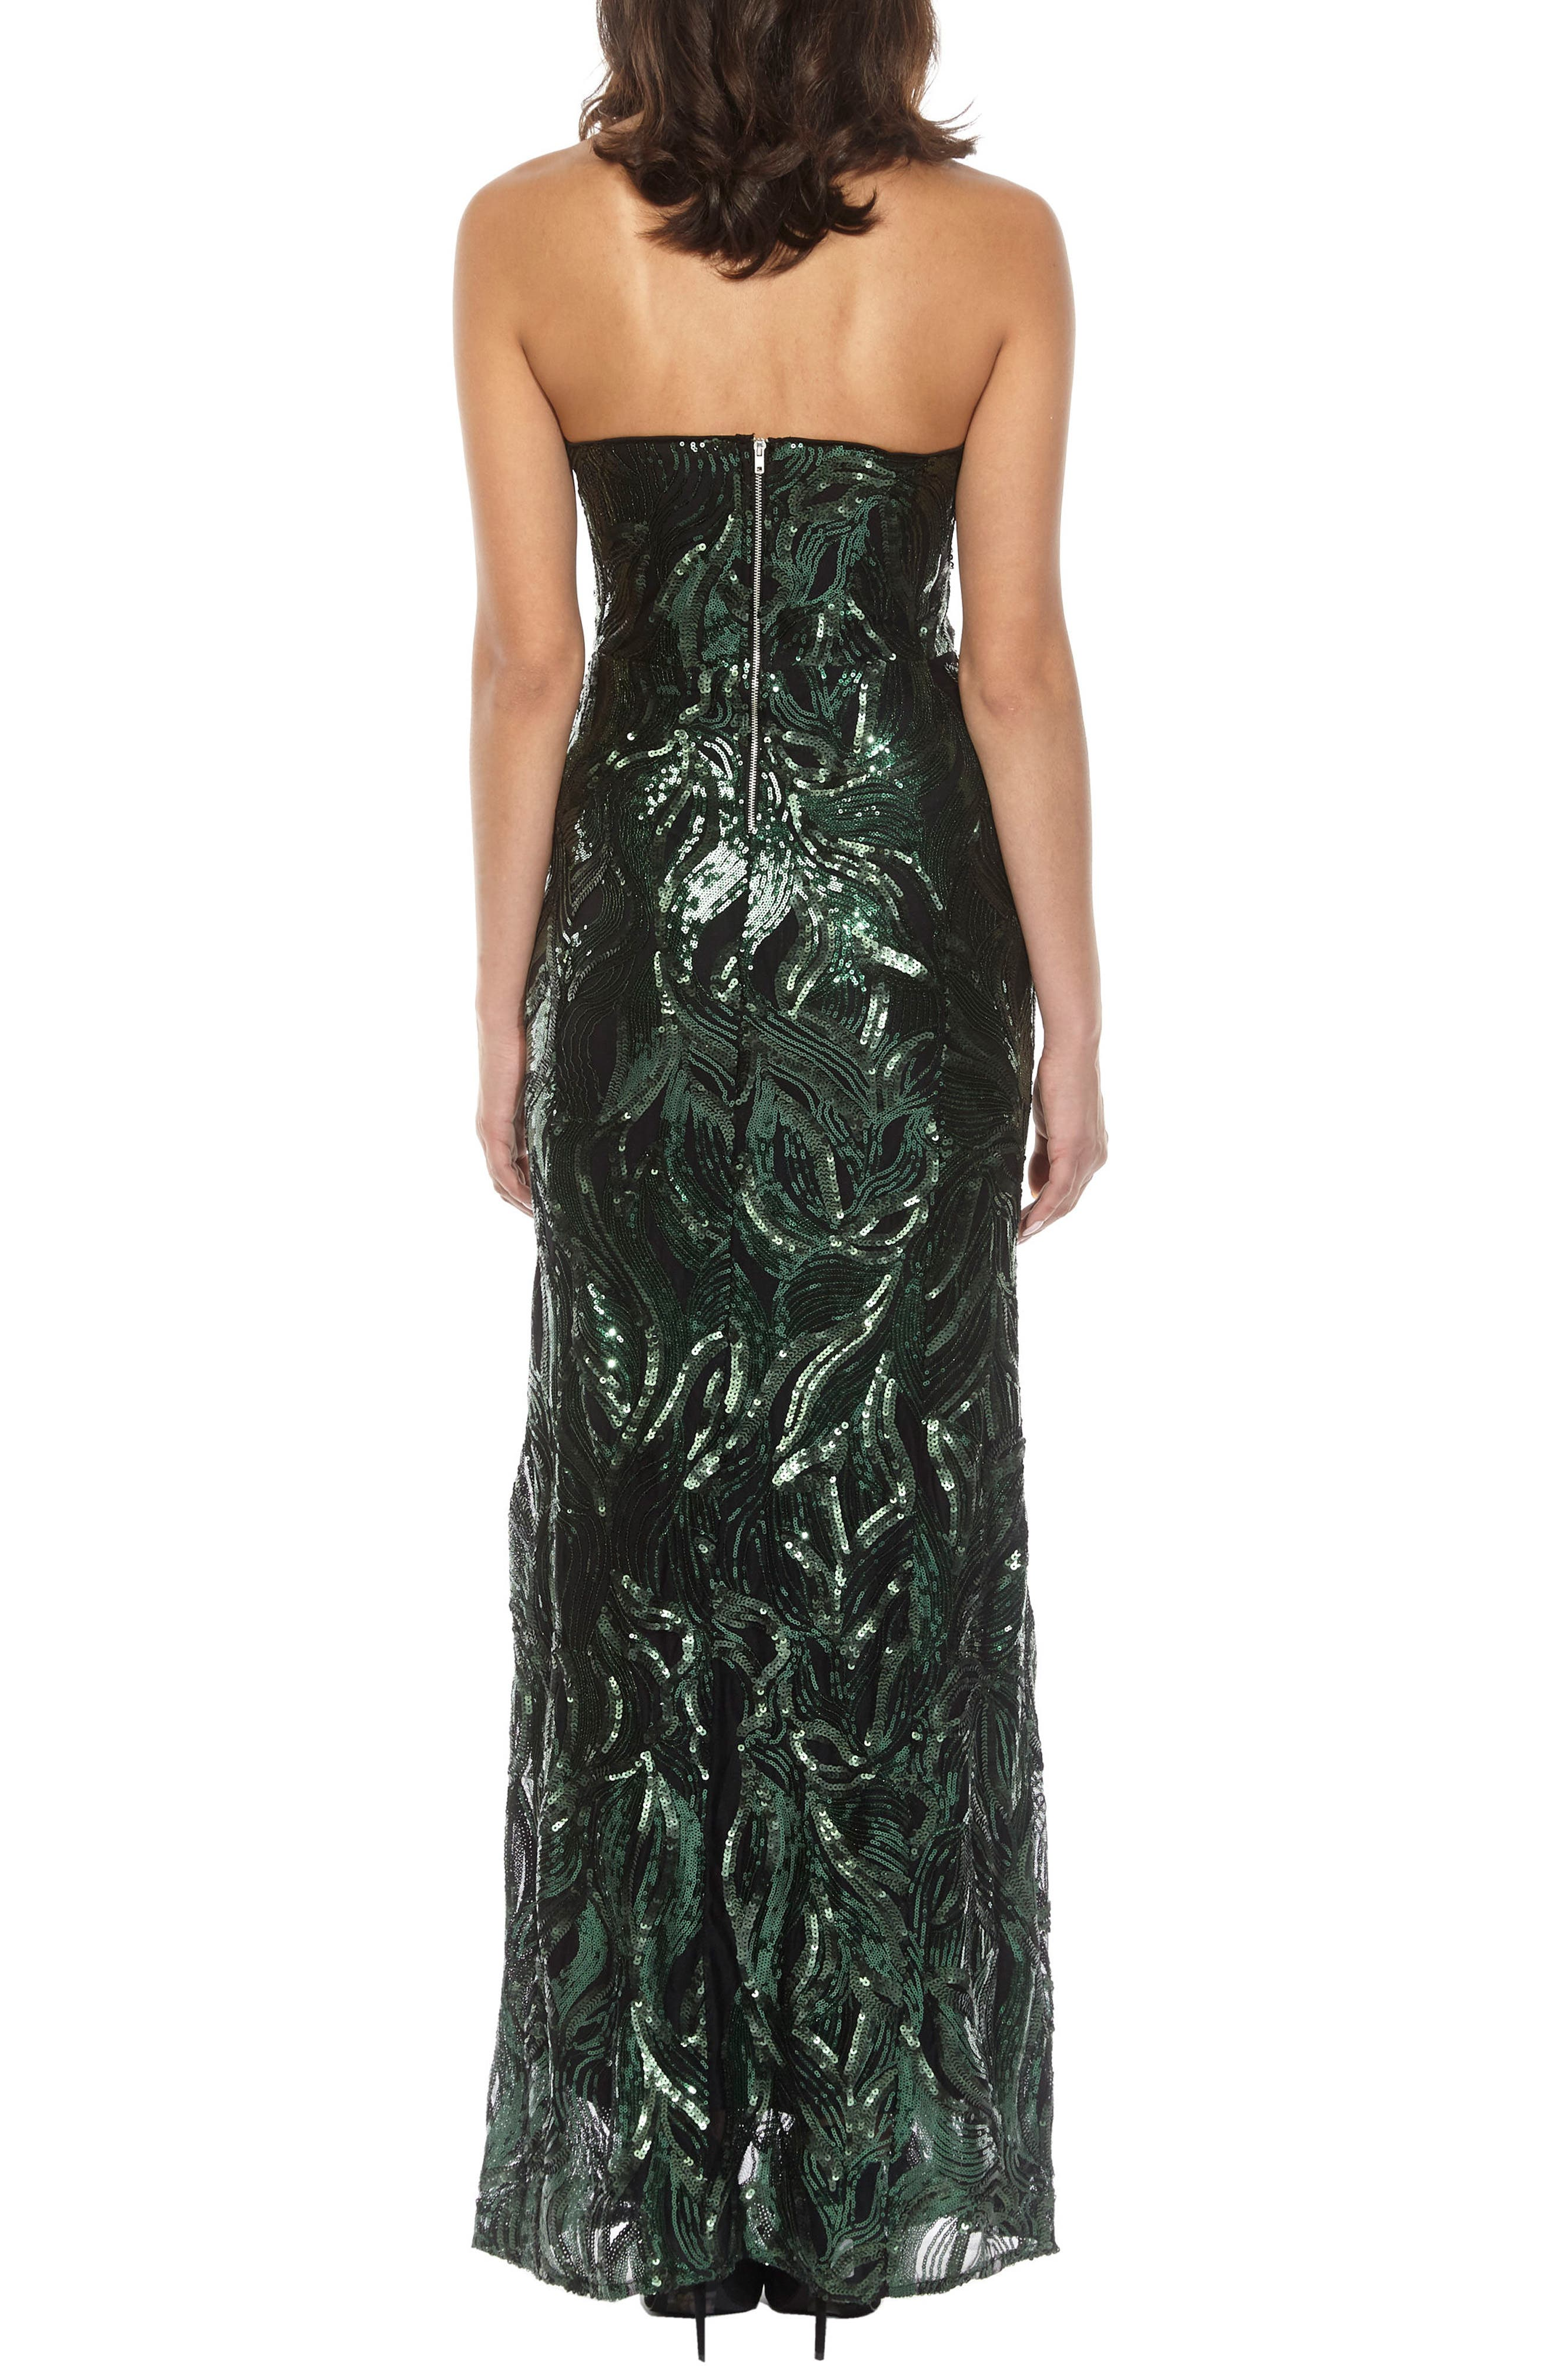 Gaynor Sequin Strapless Maxi Dress,                             Alternate thumbnail 2, color,                             310